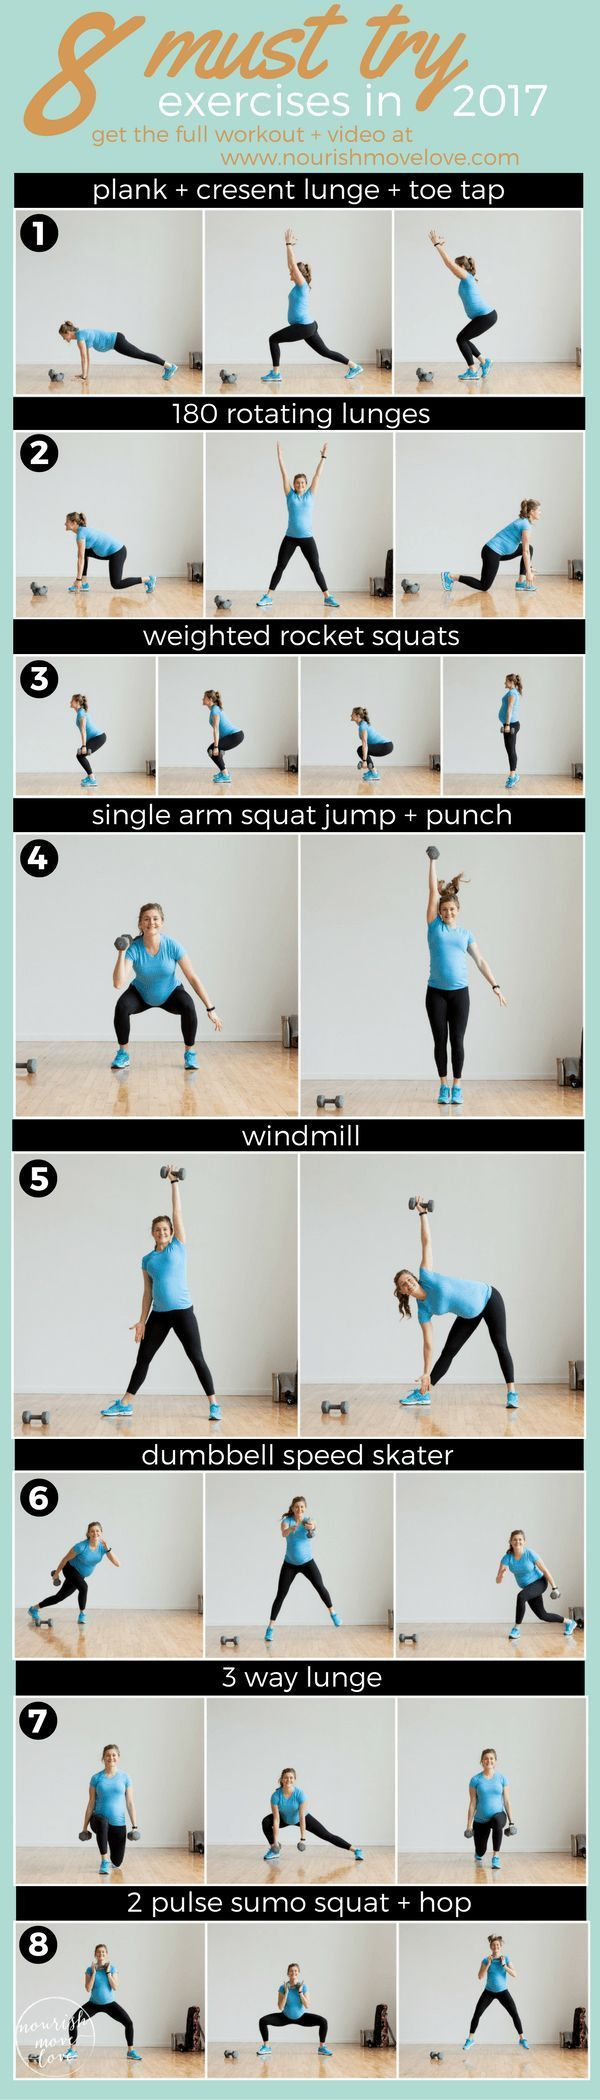 8 must try exercises in 2017. 8 exercise workout plan that challenges the whole body. Plank, lunge, squat, windmill, speed skater, and sumo squat. Get in shape for the summer with this total body workout! Bodyweight or dumbbell exercises. | www.nourishmo